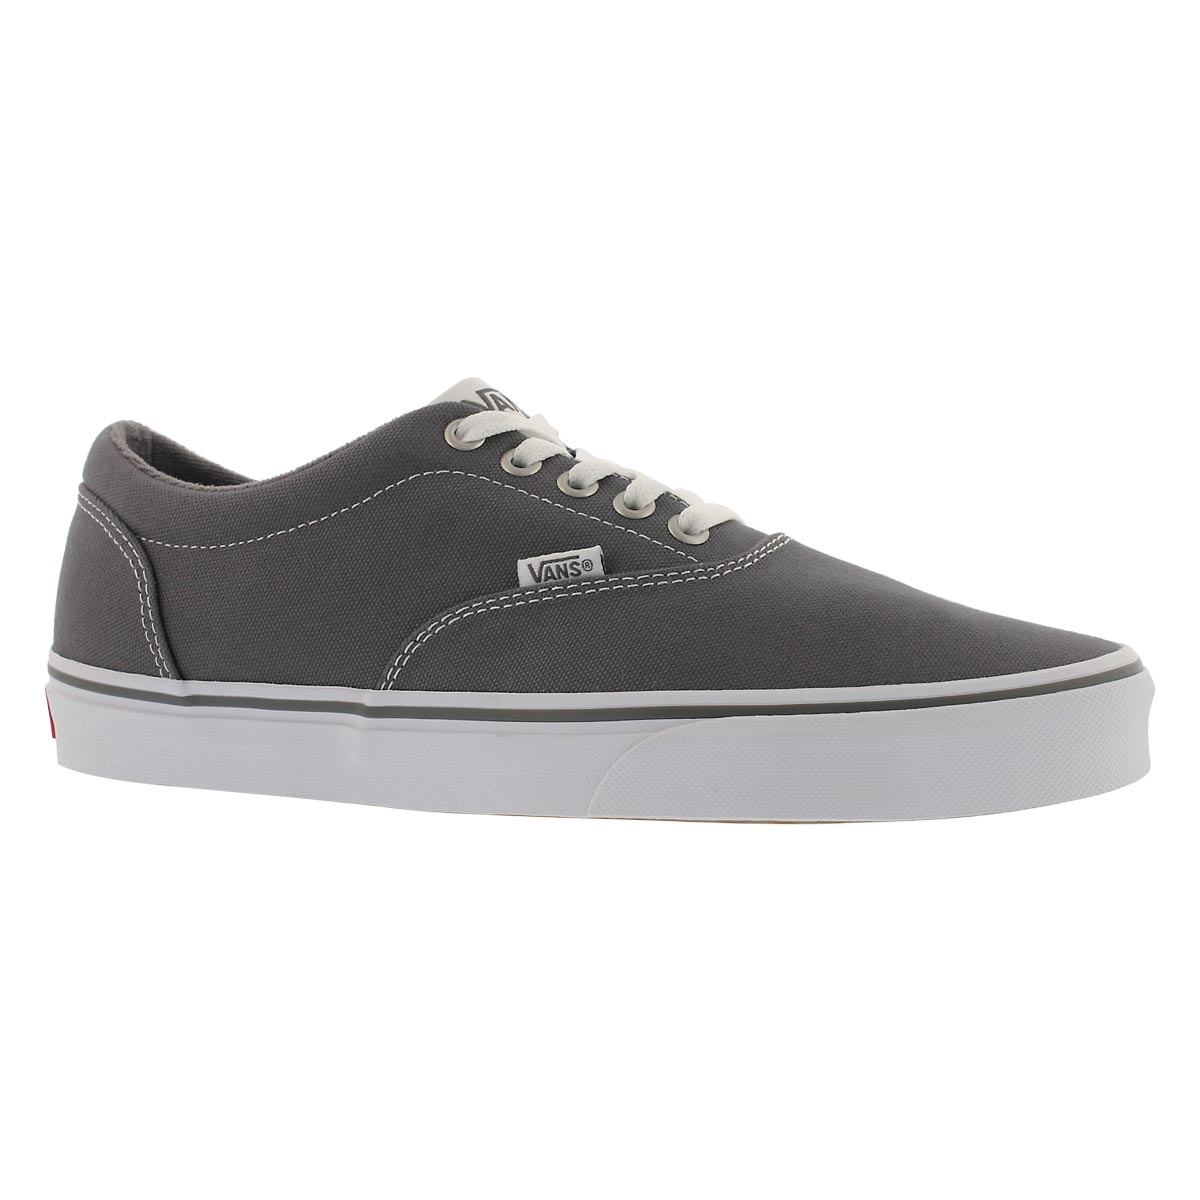 Men's DOHENY pewter/white lace up sneakers